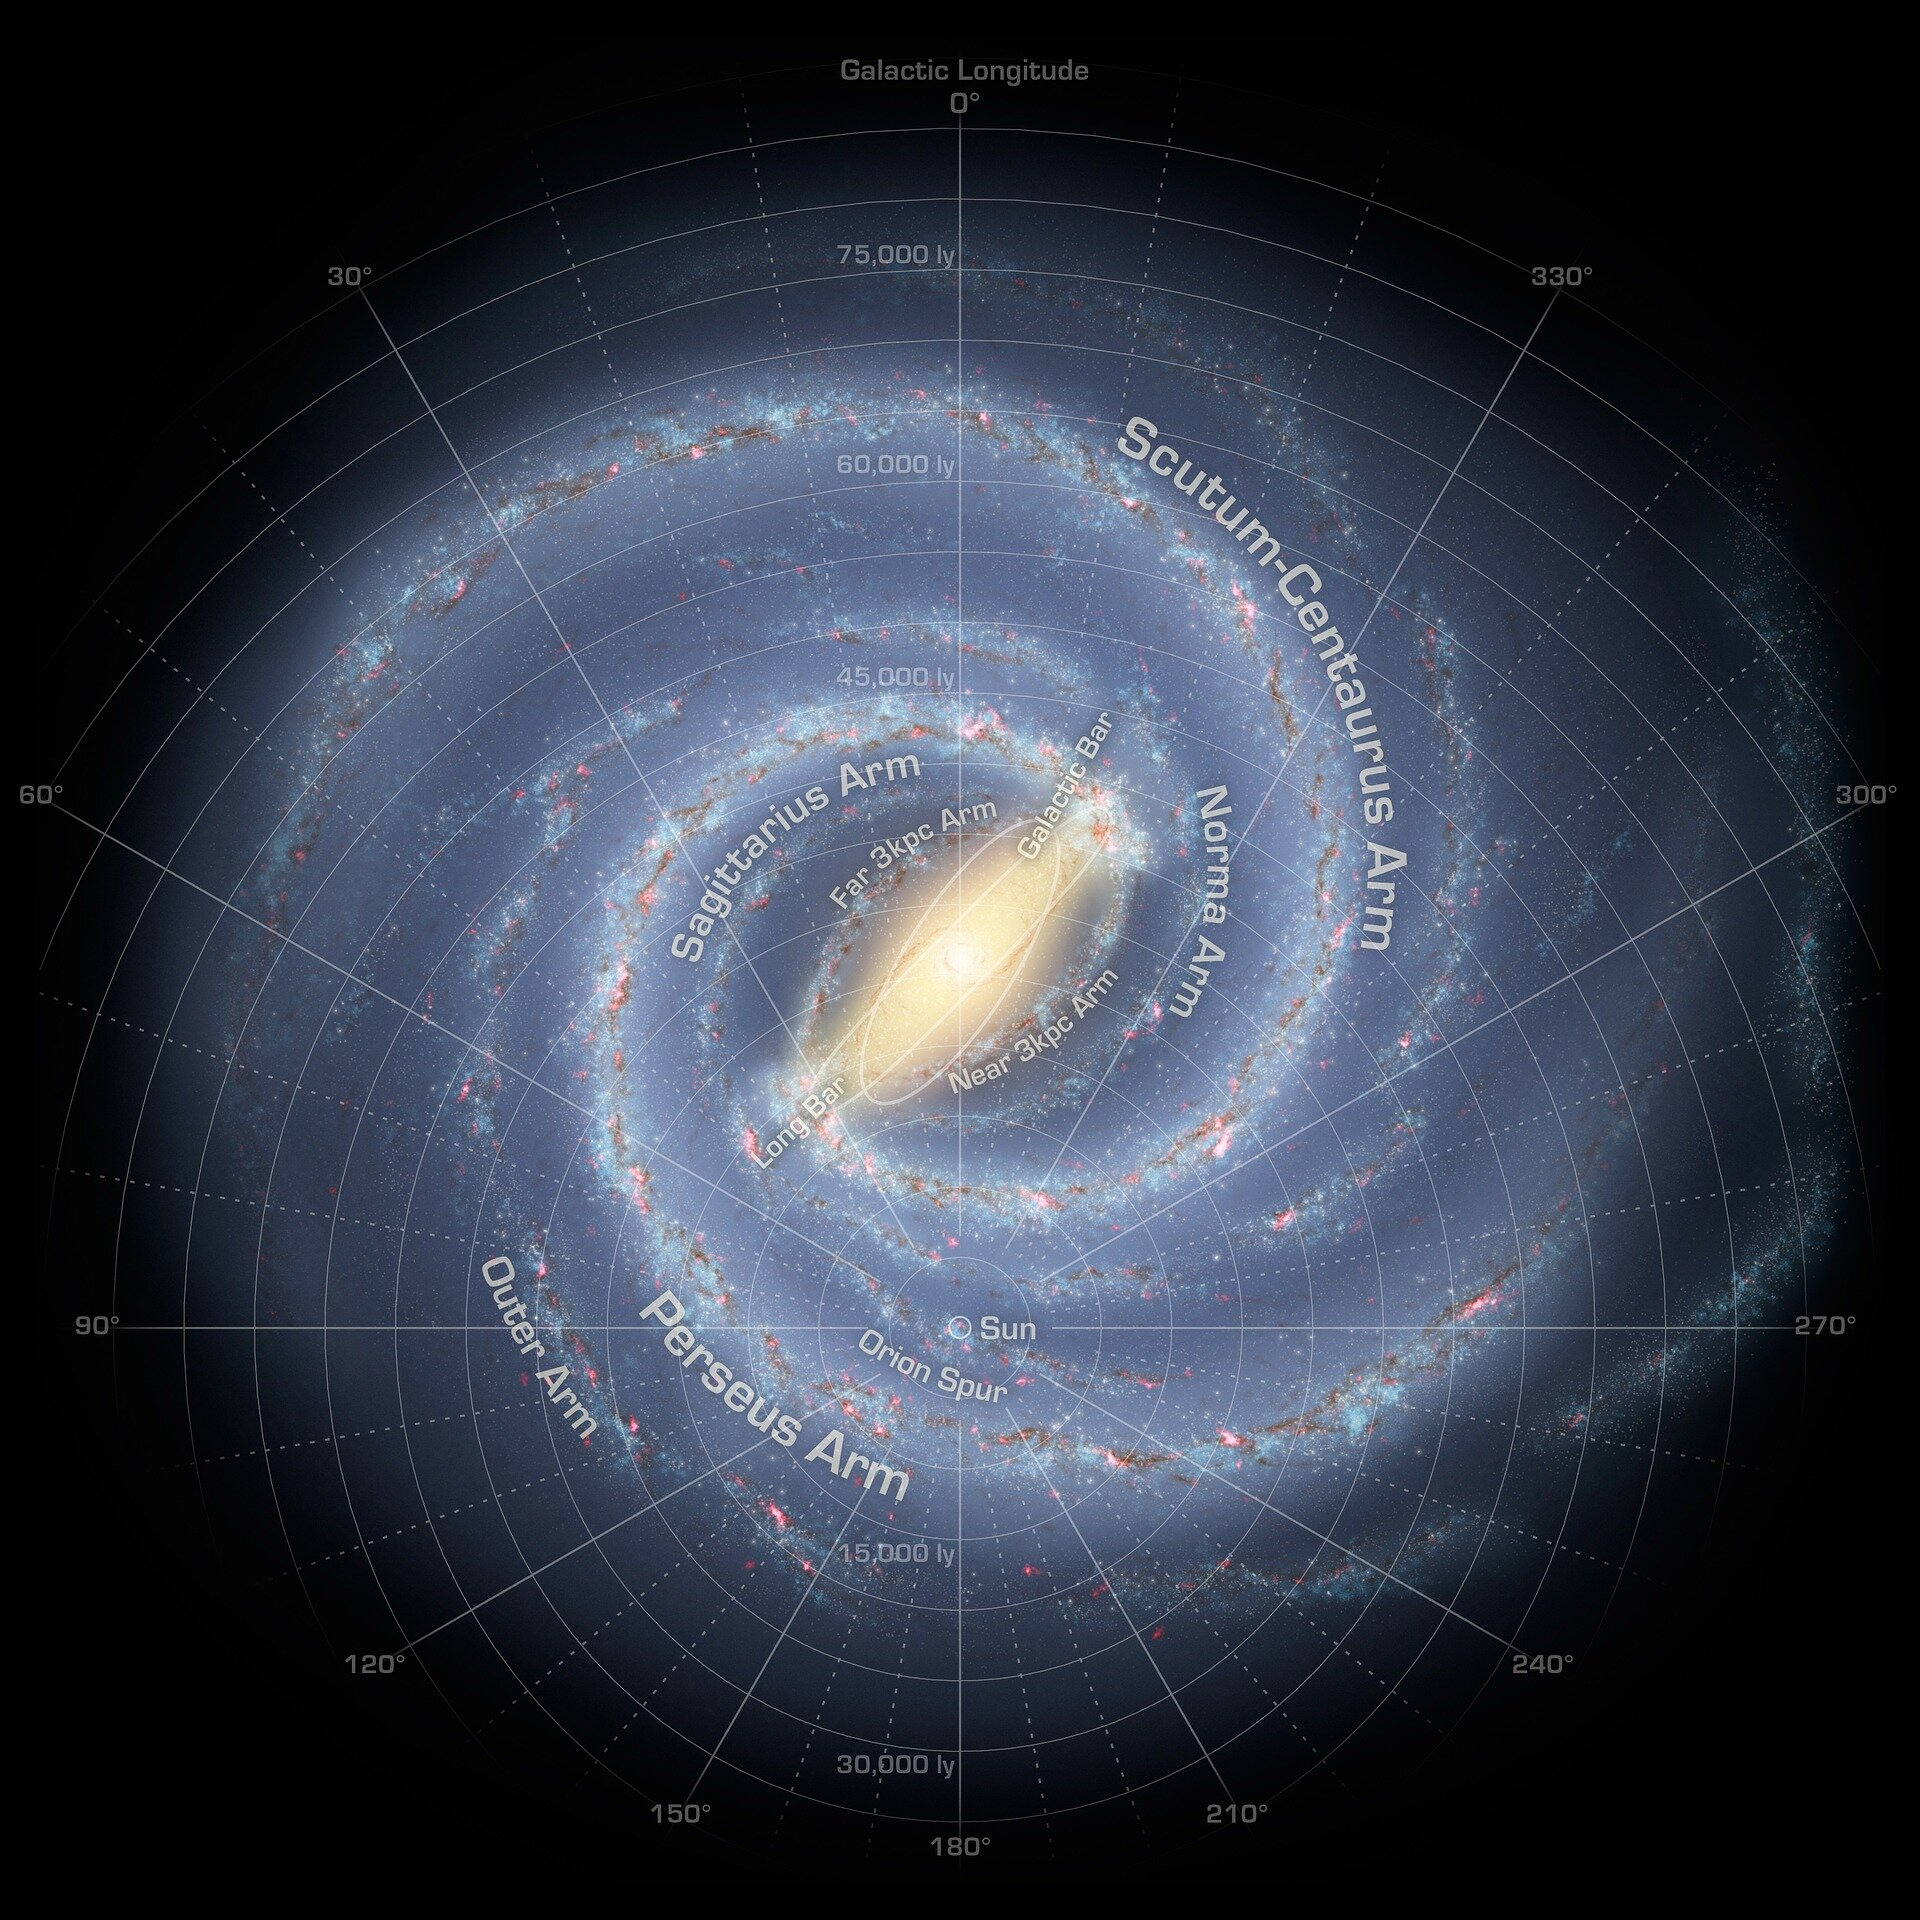 Fast-rotating stars at the centre of the Milky Way could have migrated from the outskirts of the galaxy